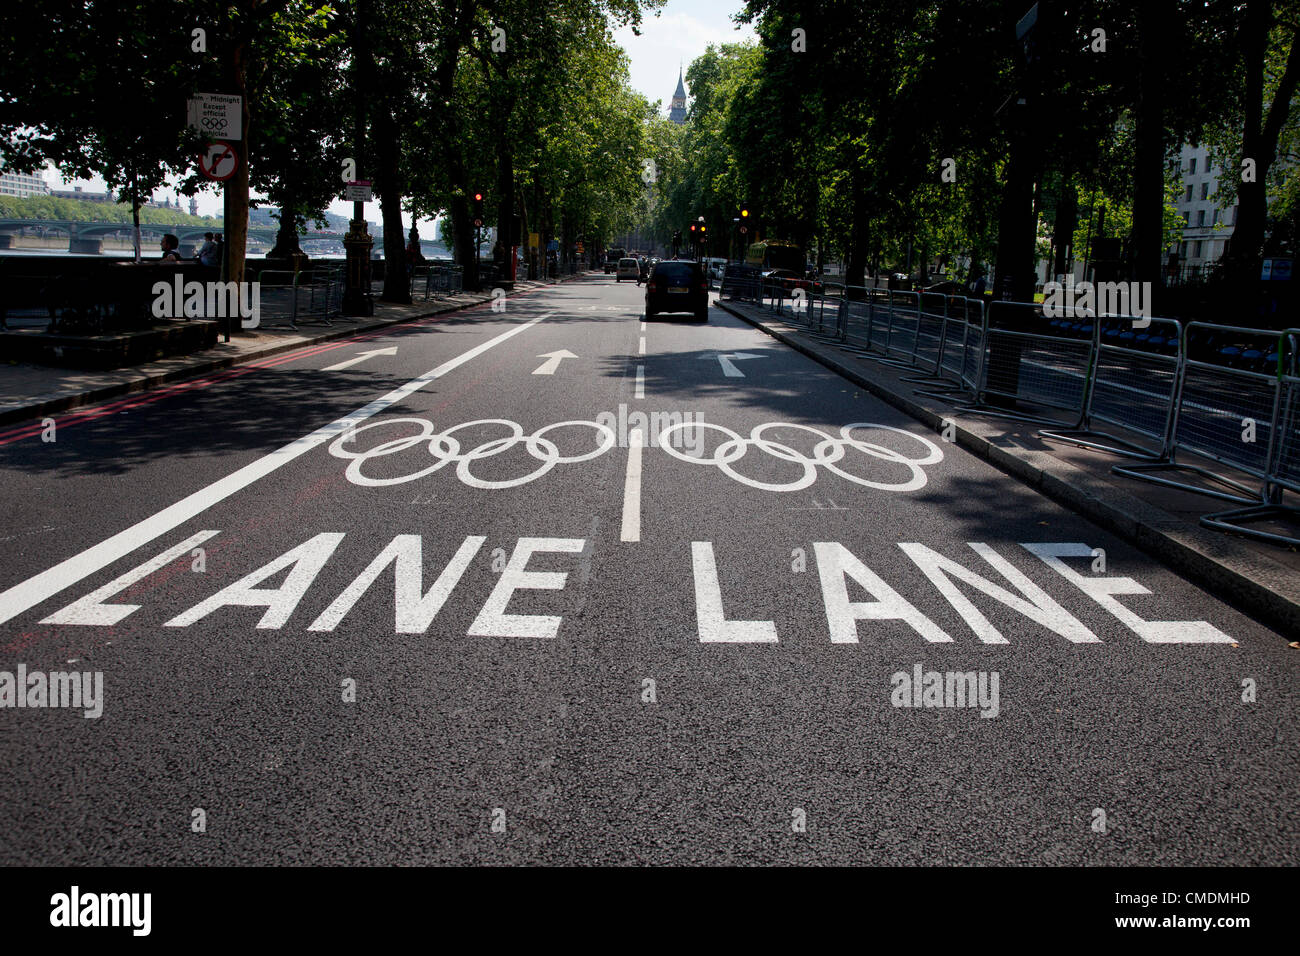 London, UK. Wednesday 25th July 2012. Games lane on Embankment on the Olympic Route Network. Transport is a huge - Stock Image